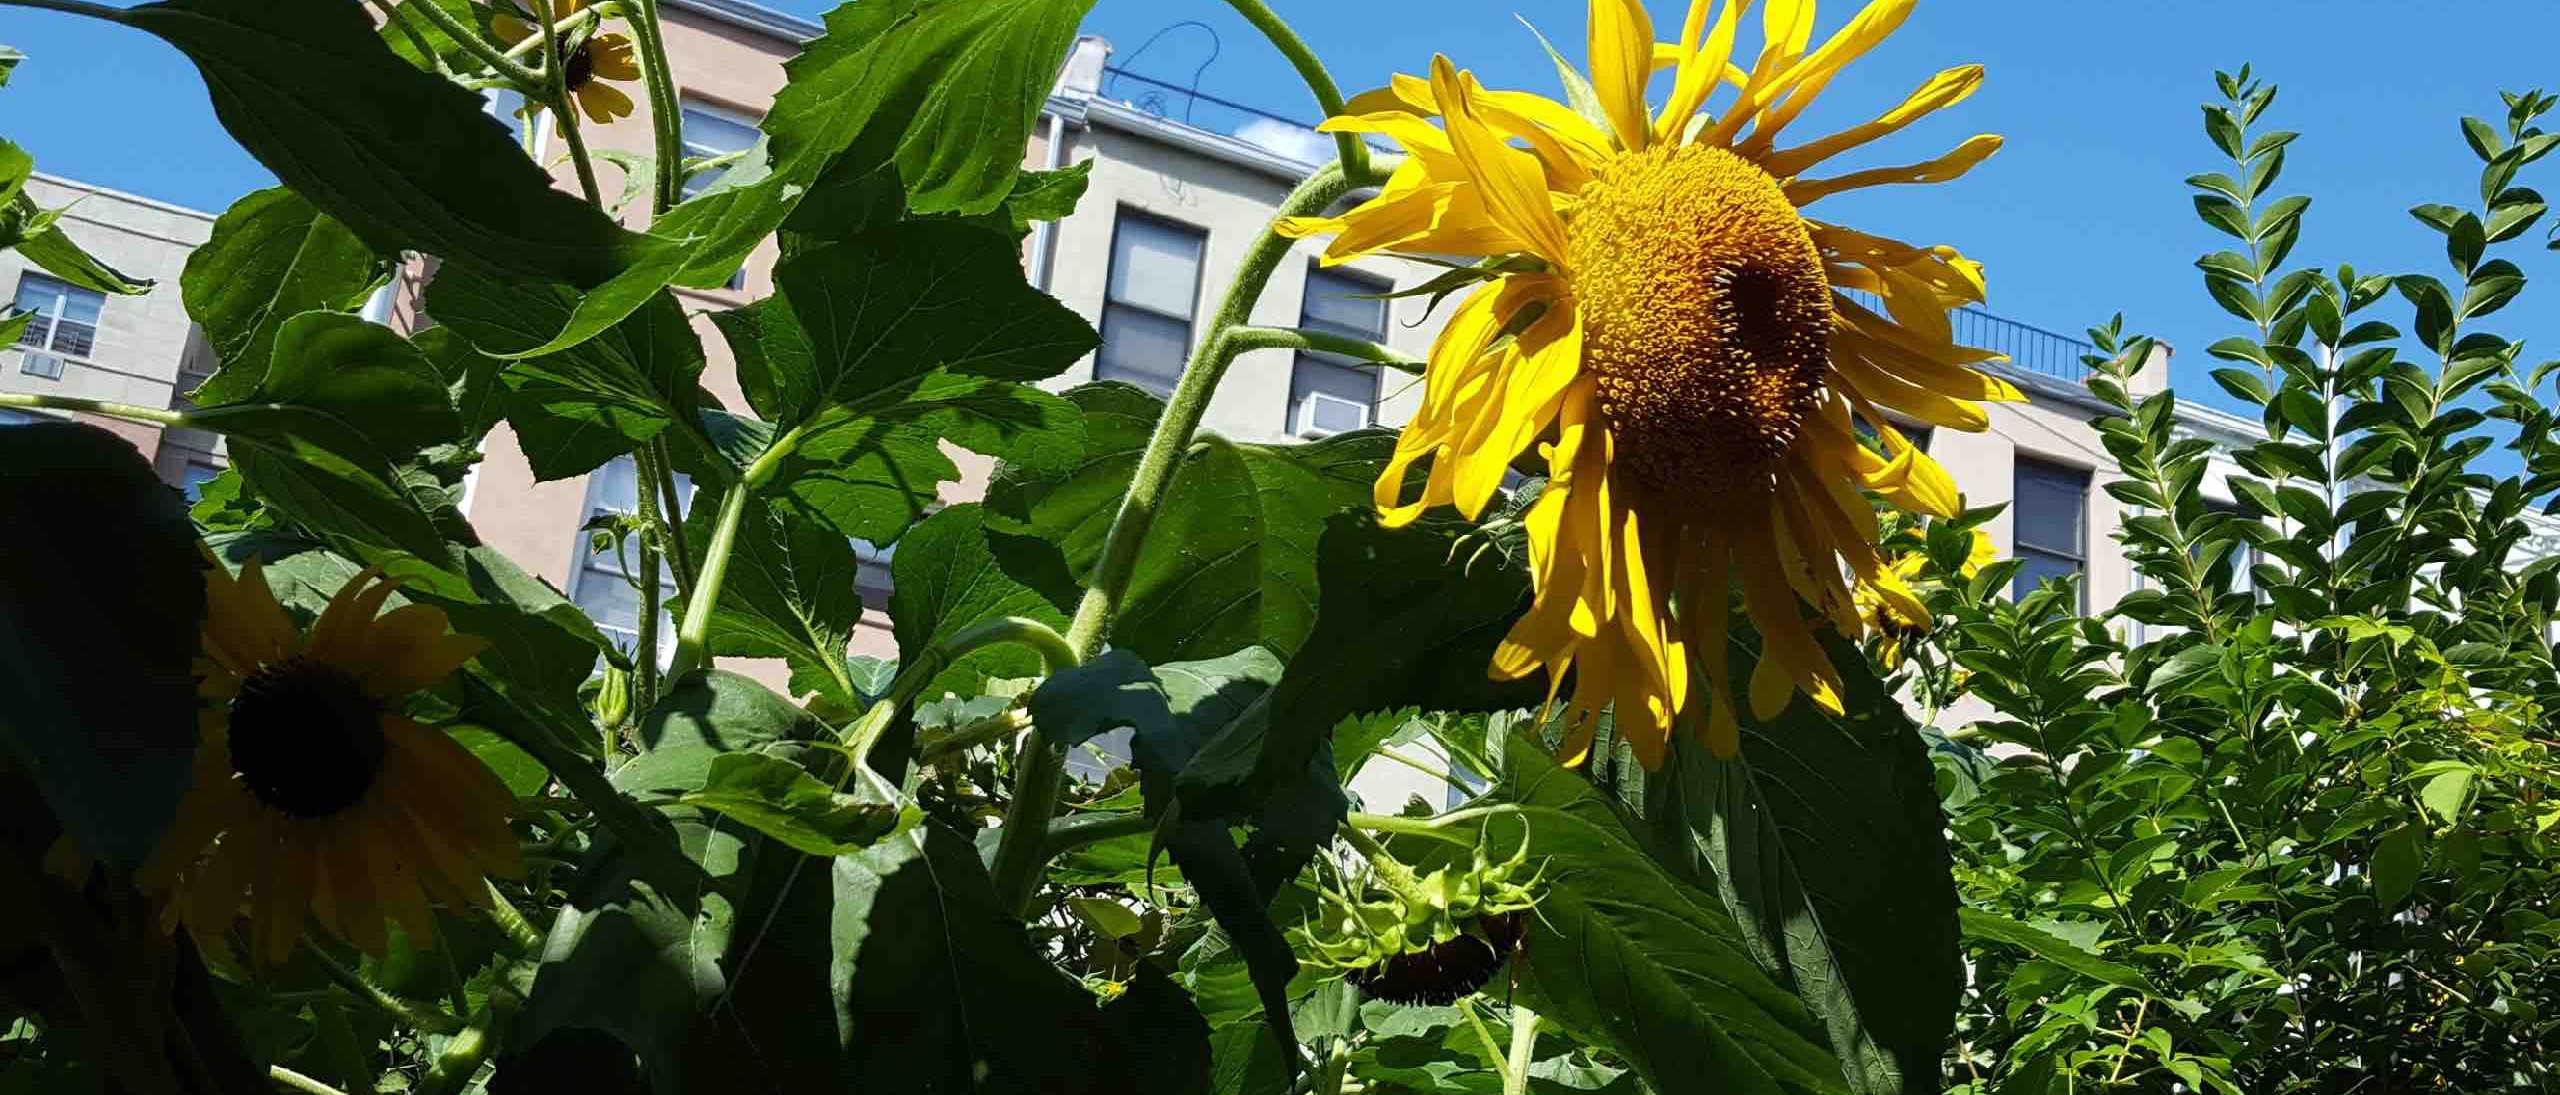 Sunflower infront of white apartment building